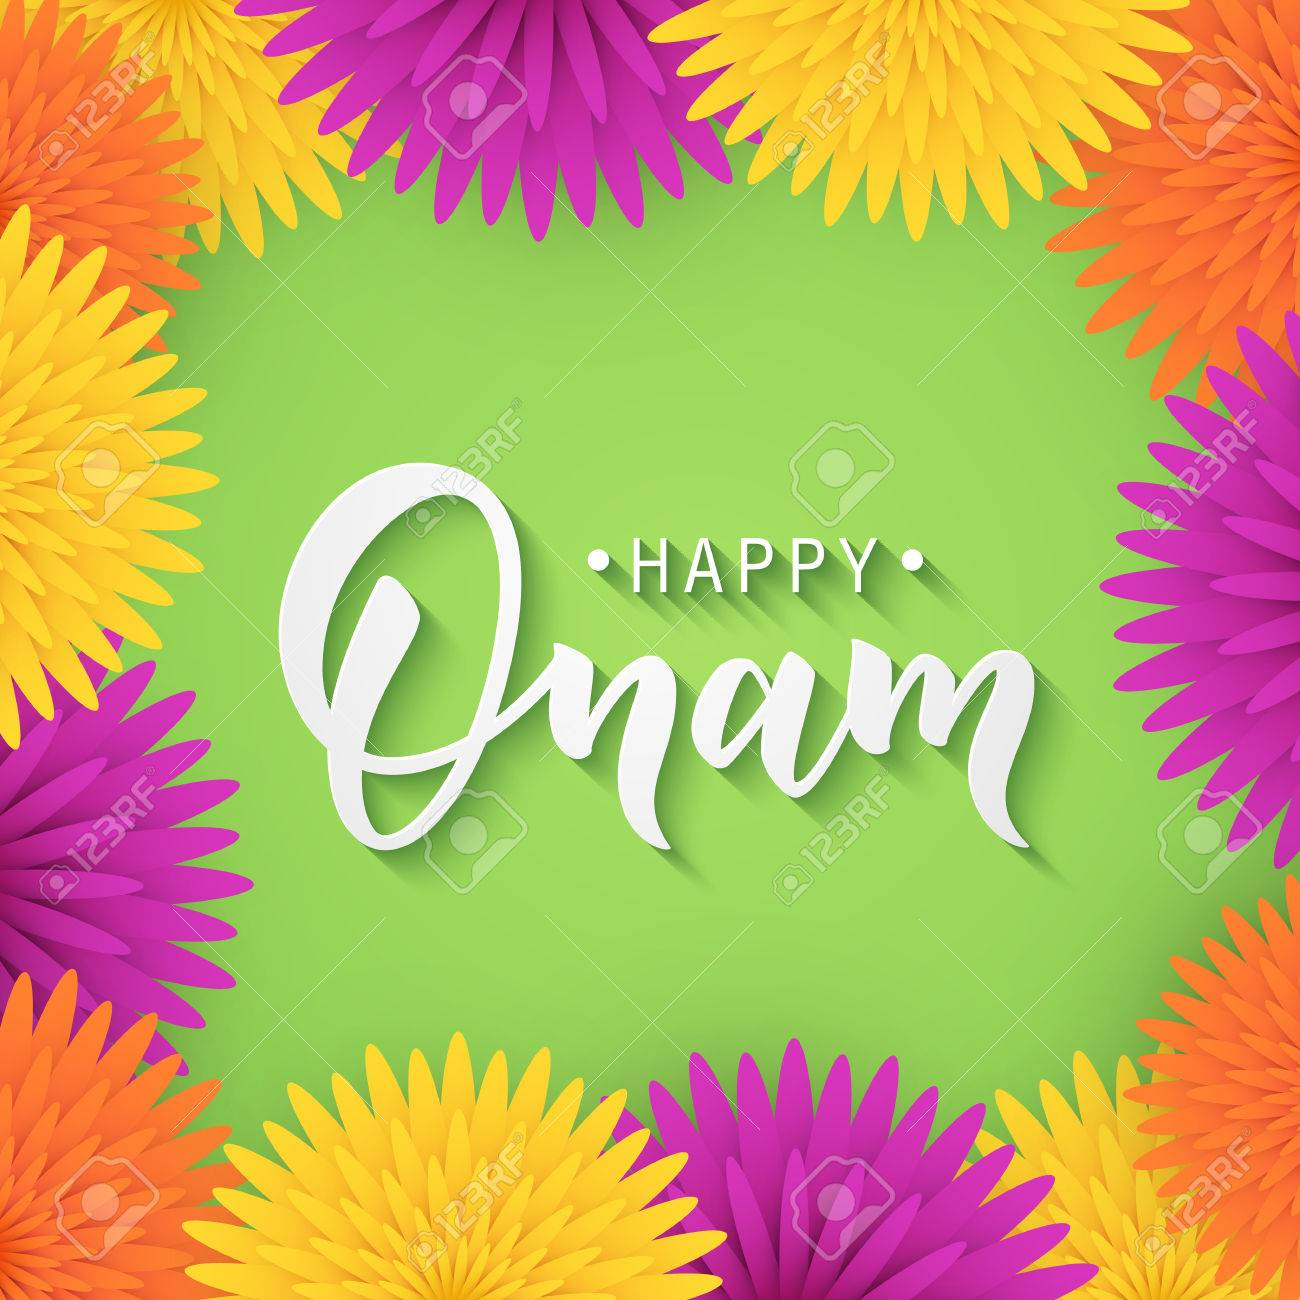 Happy Onam Greeting Lettering Royalty Free Cliparts Vectors And